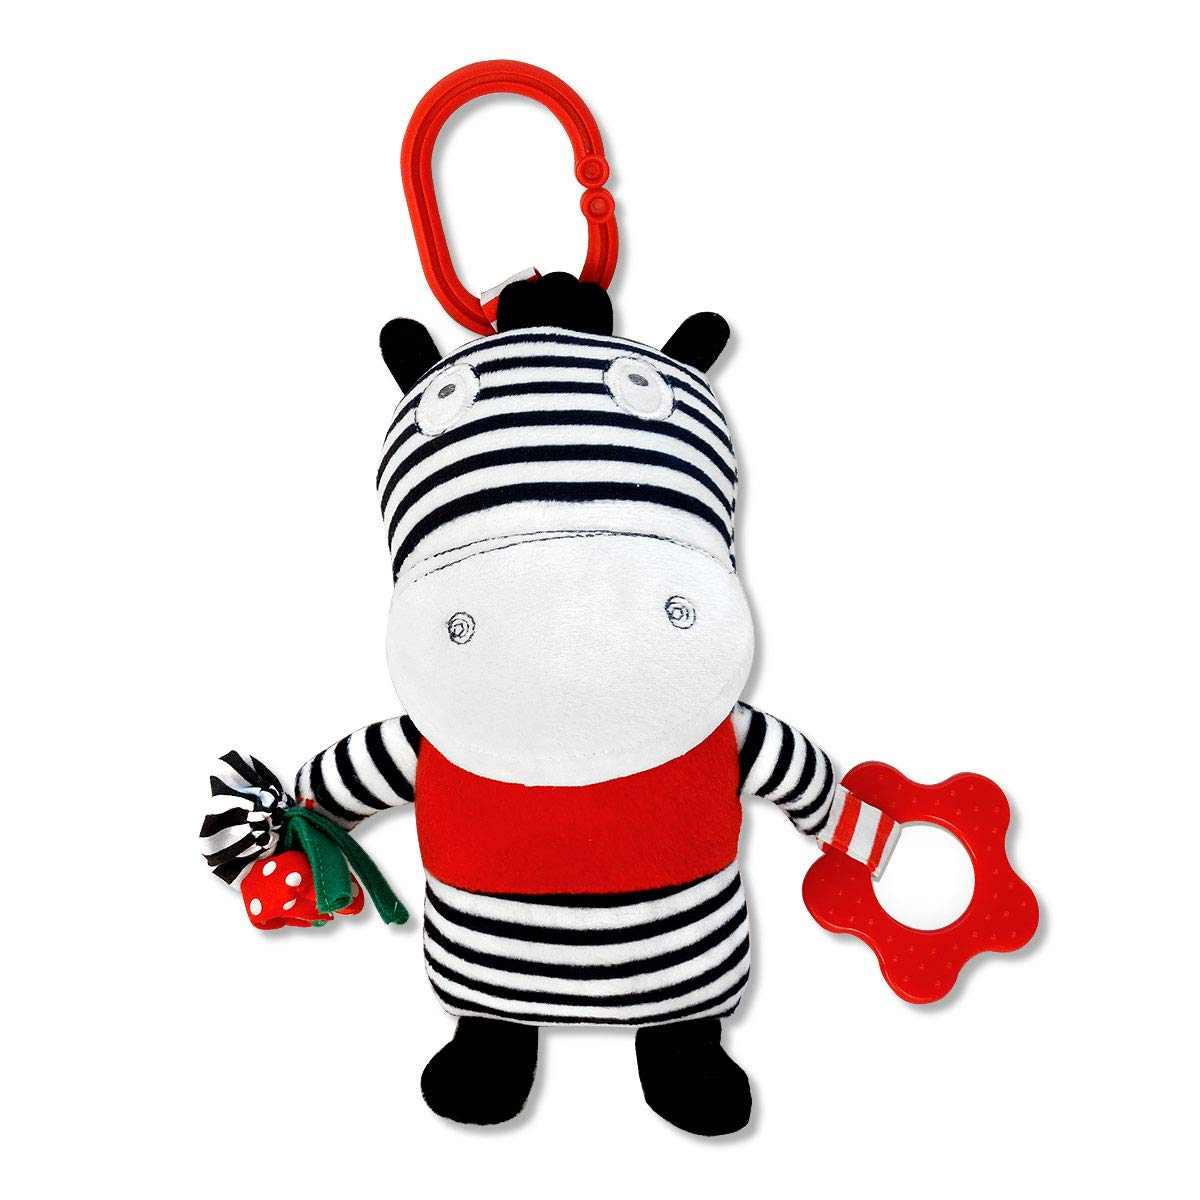 Ziggy The Zebra Black and White, On-The-Go Baby Car Seat Infant Carrier Sensory Toy by Genius Baby Toys